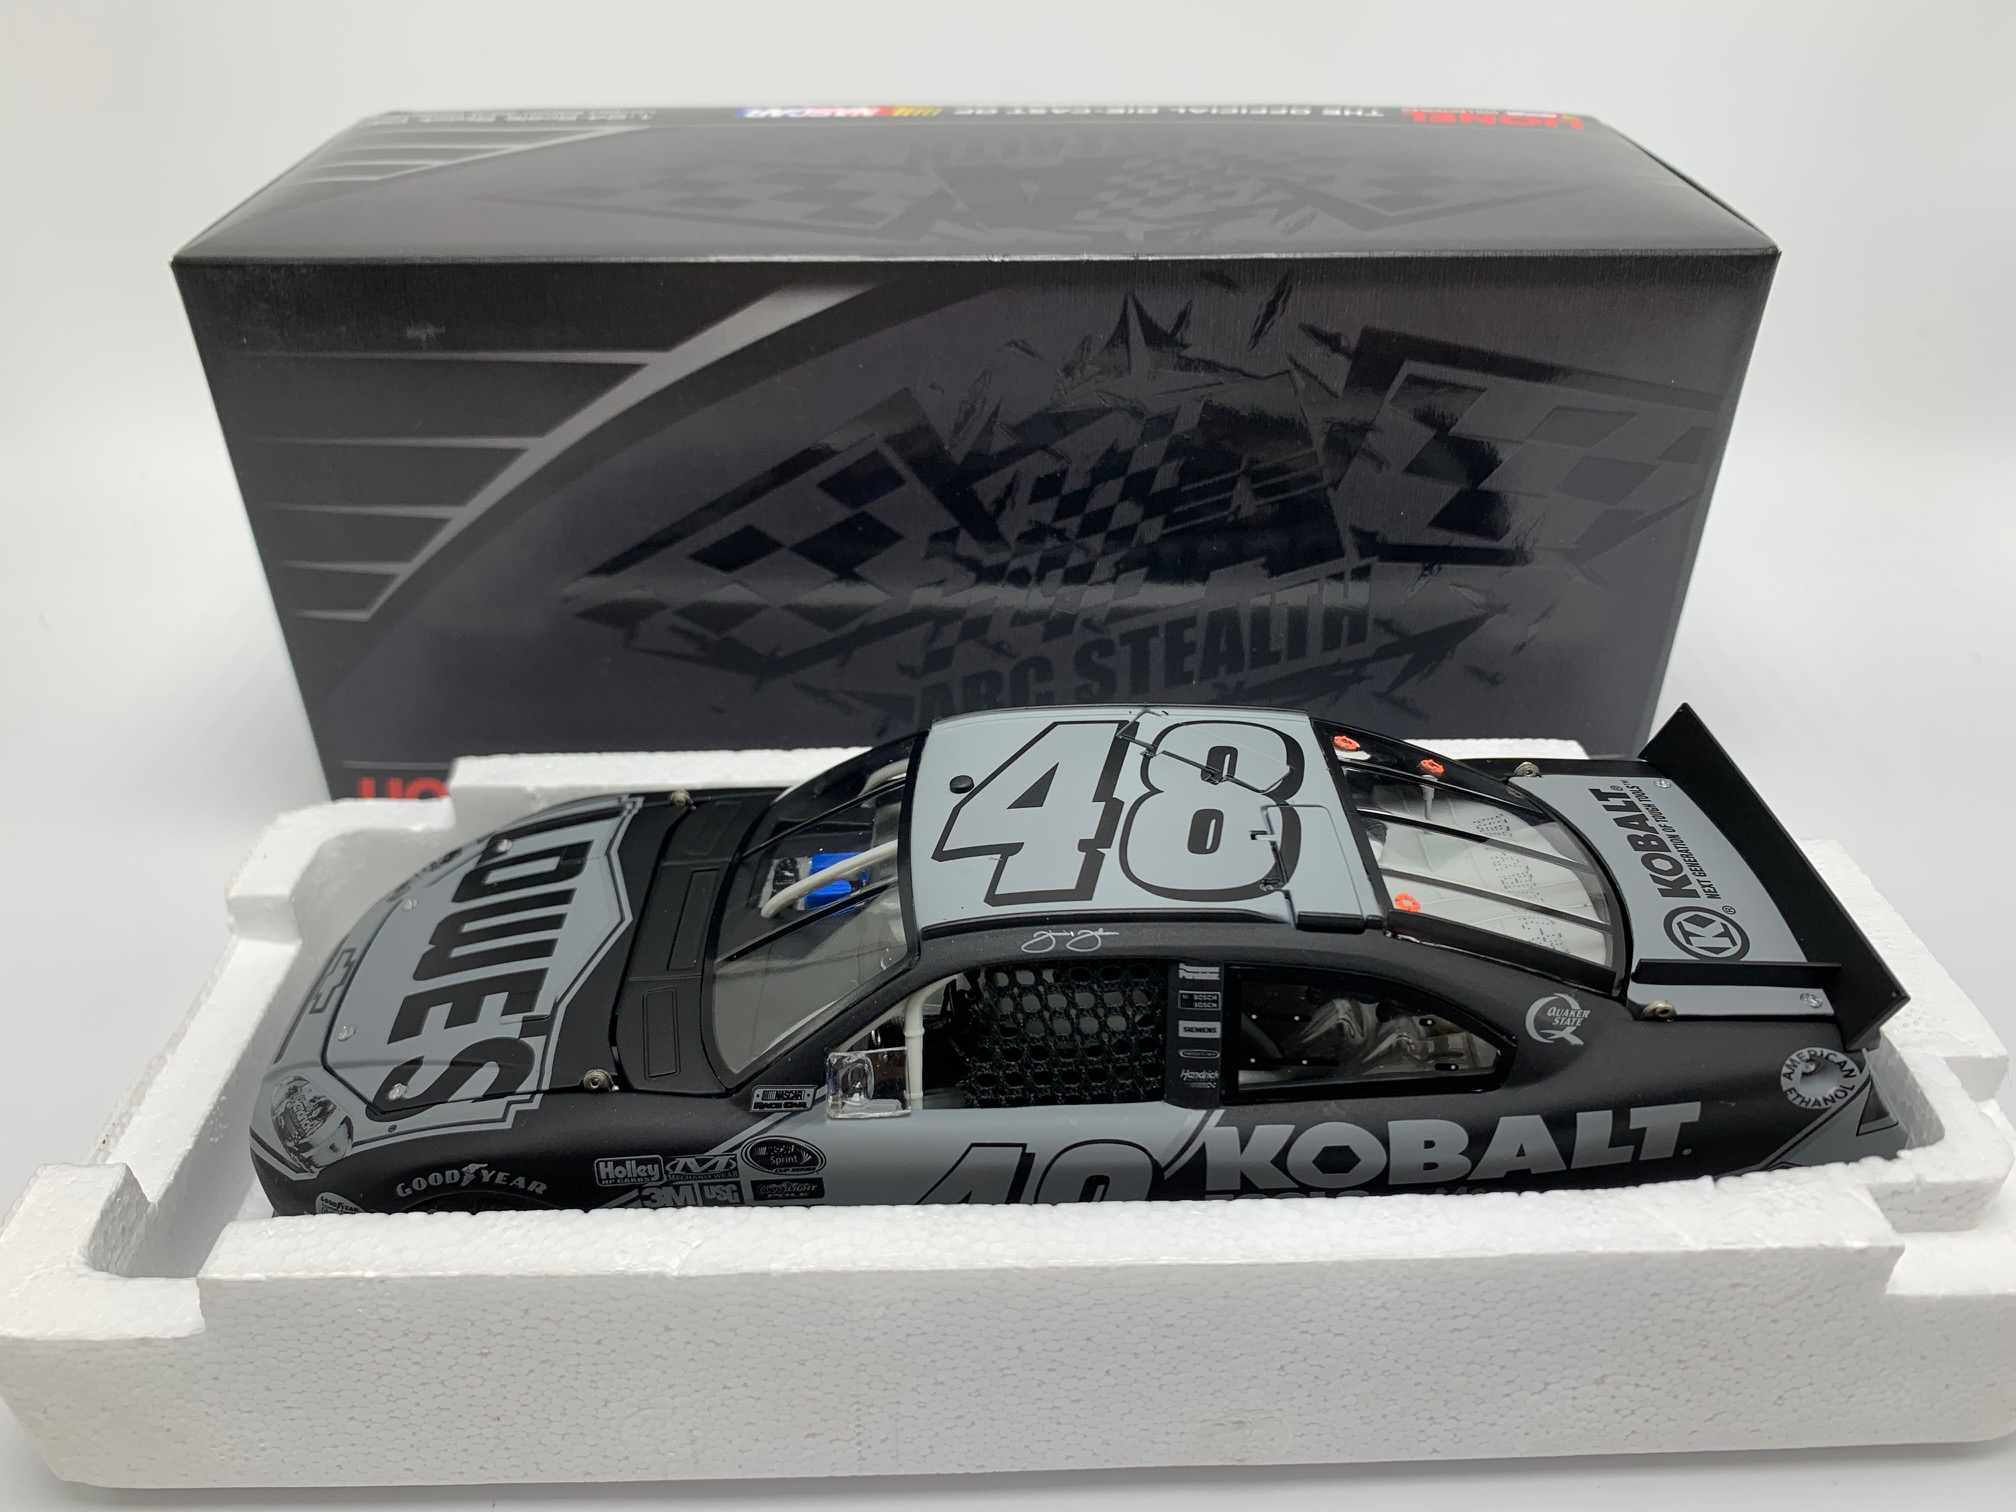 JIMMIE JOHNSON 2011 KOBALT TOOLS 1:24 ARC STEALTH DIECAST - DIN # 1